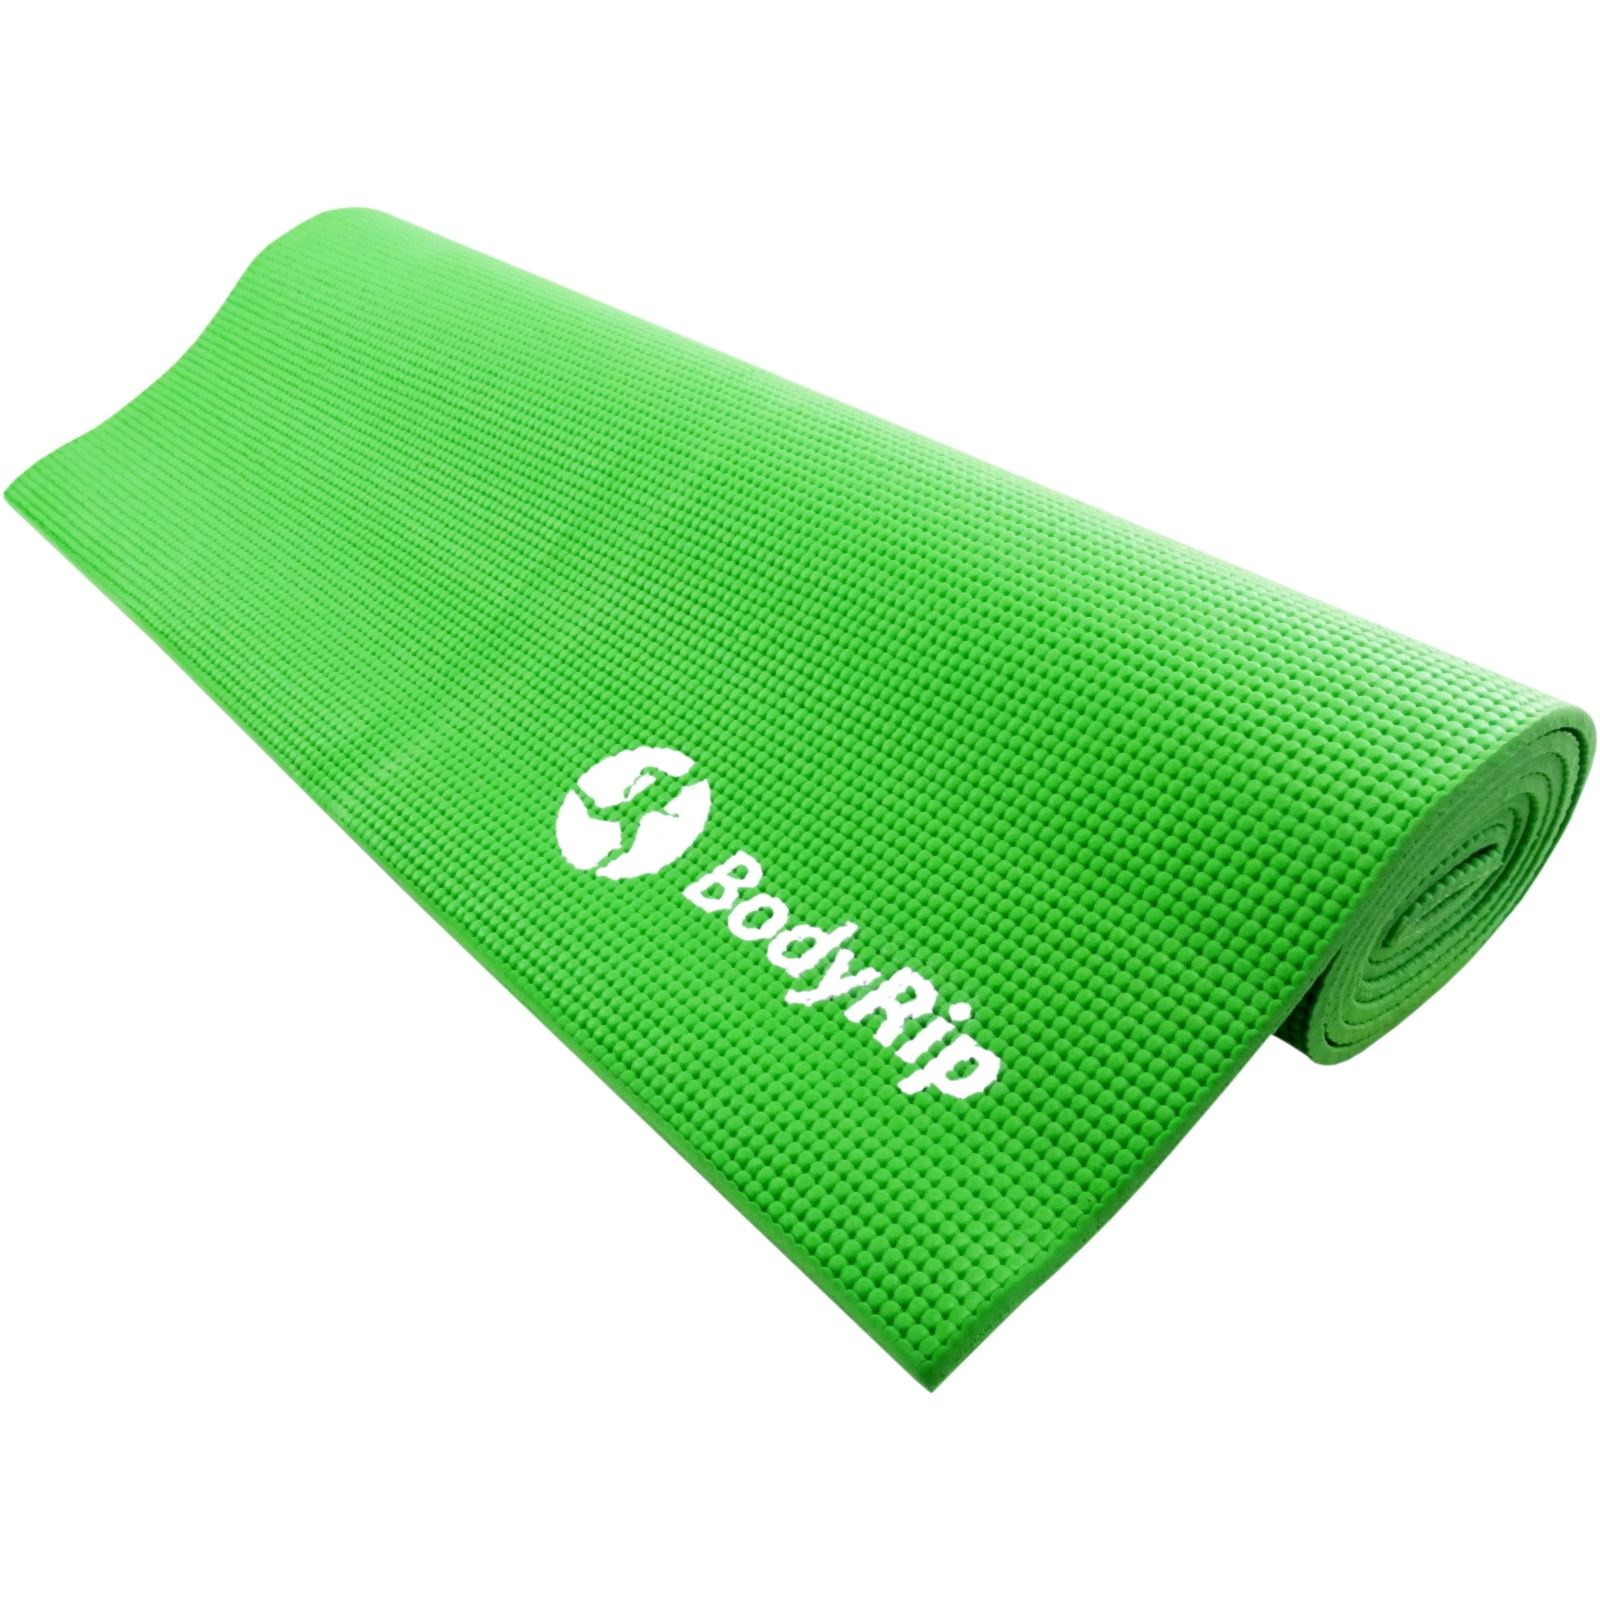 martial exercise walmart ip folding best aerobics mat diy com choice gym for gymnastics yoga mats multicolor arts products